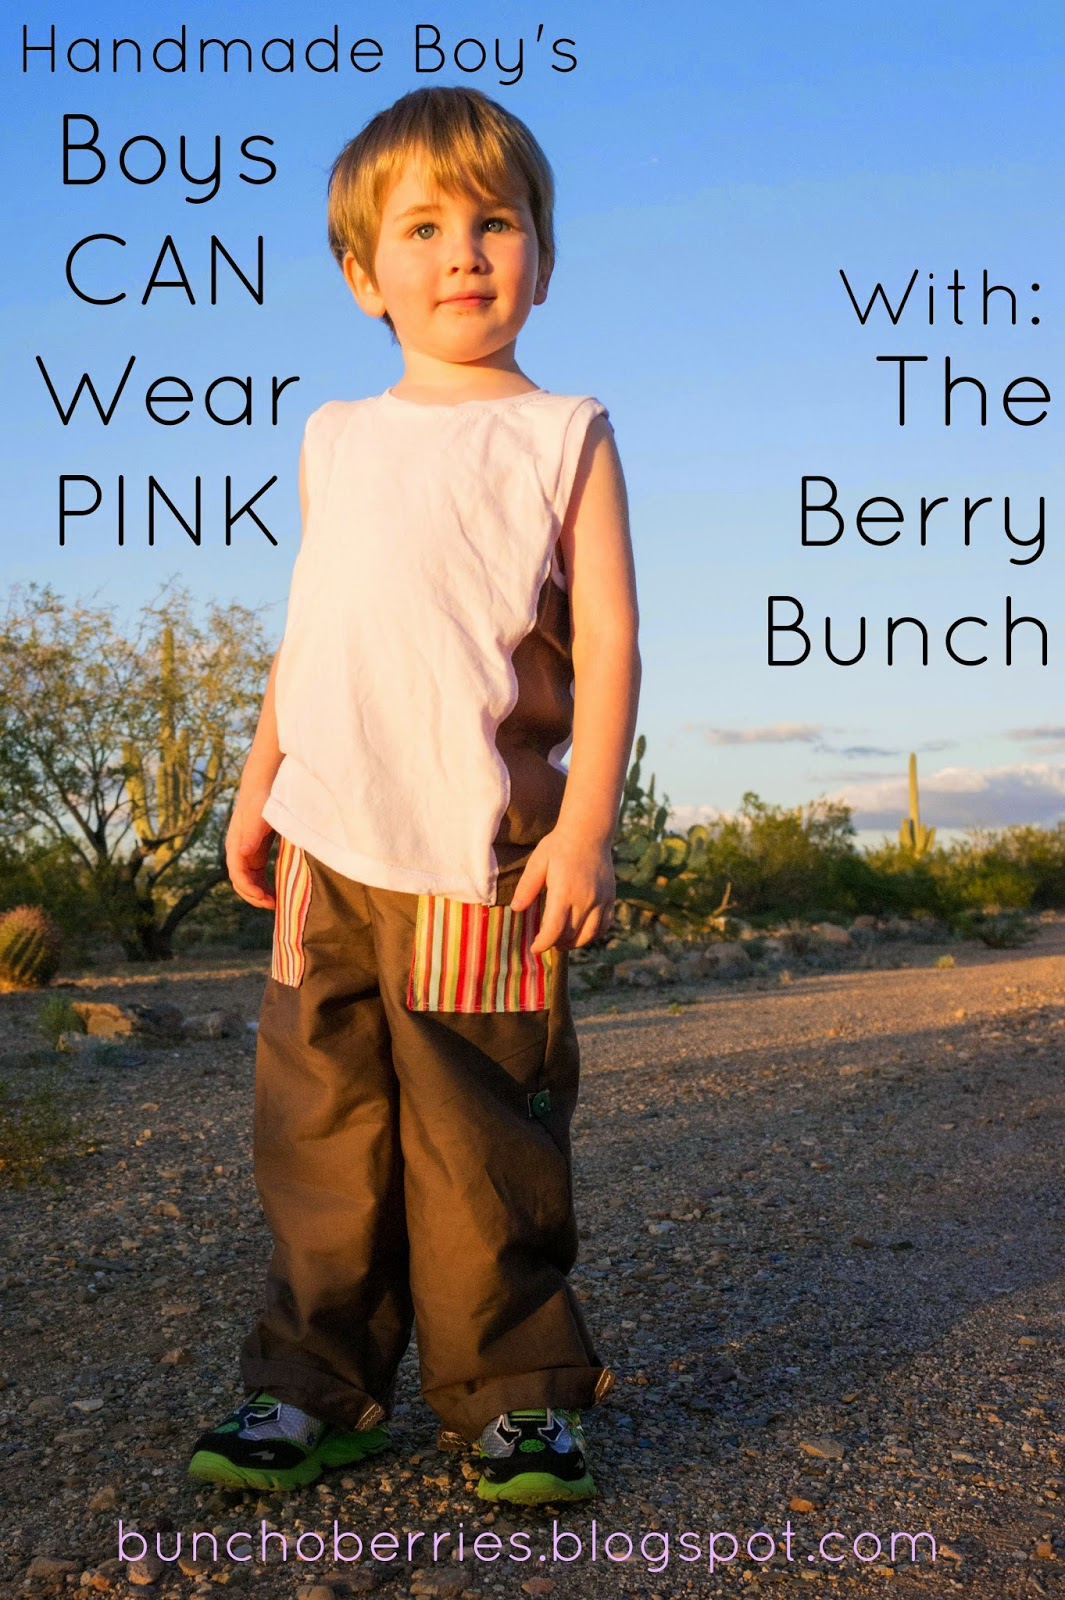 The Berry Bunch: Brown and Pink Jelly Bean Inspiration: Handmade Boys' Boys Can Wear Pink Series